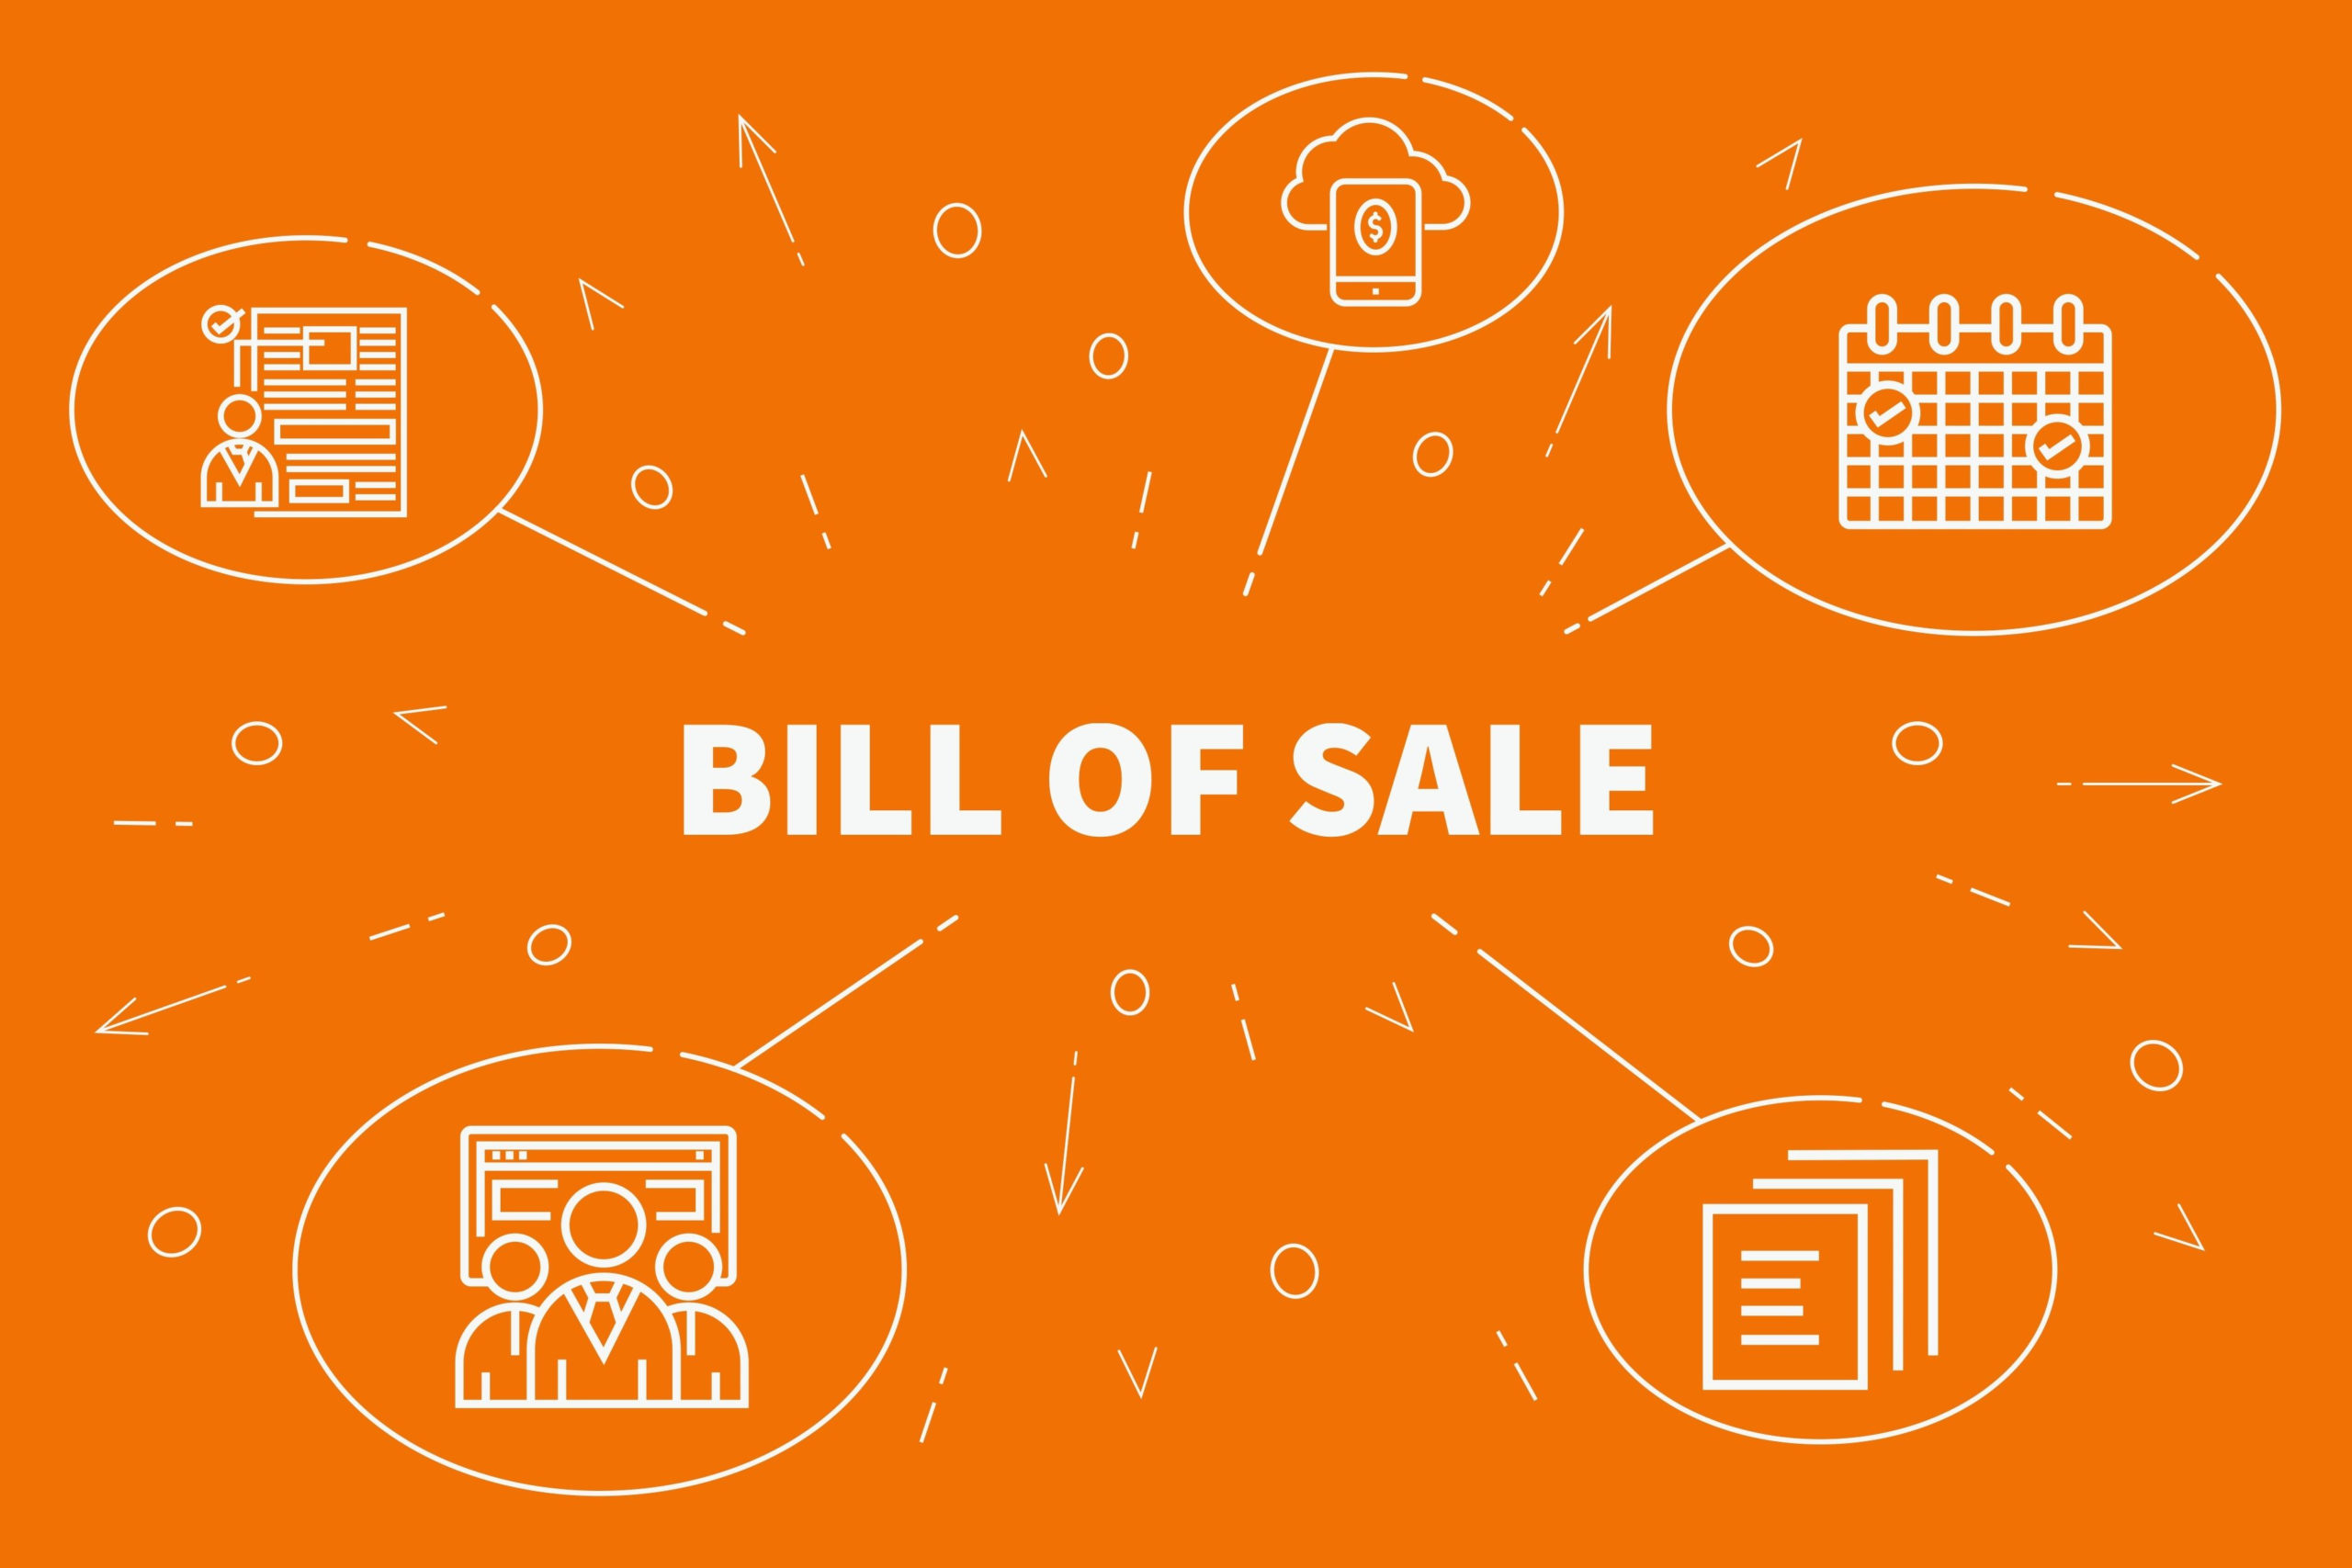 Model Warranty Bill Of Sale - How To Guide   Legalzoom